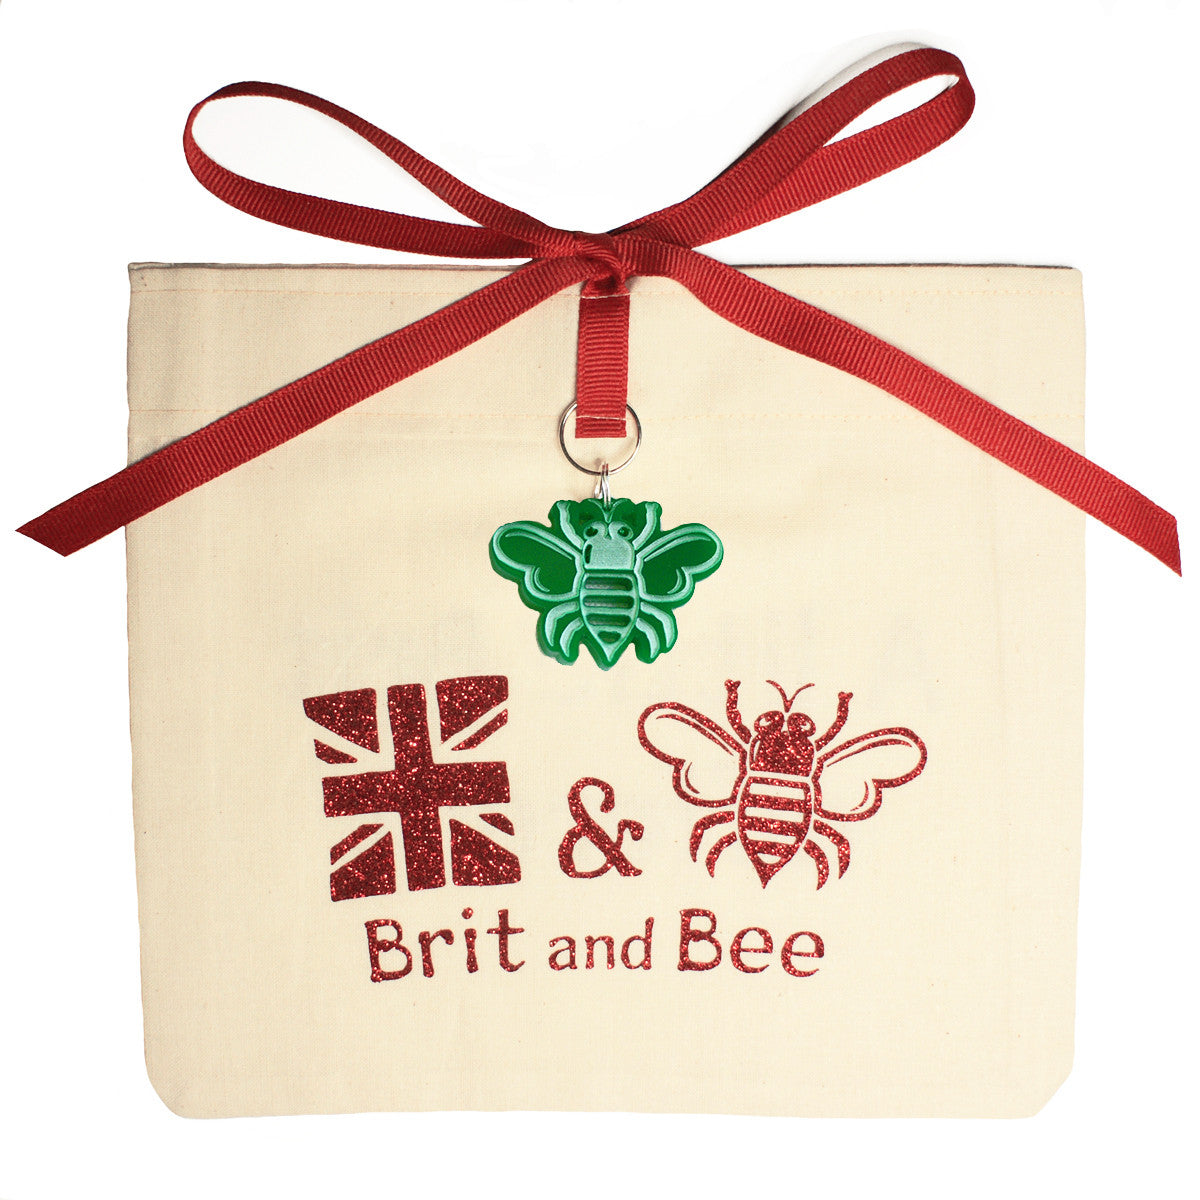 Brit and Bee Sorority Lil' Decal - Alpha Gamma Delta